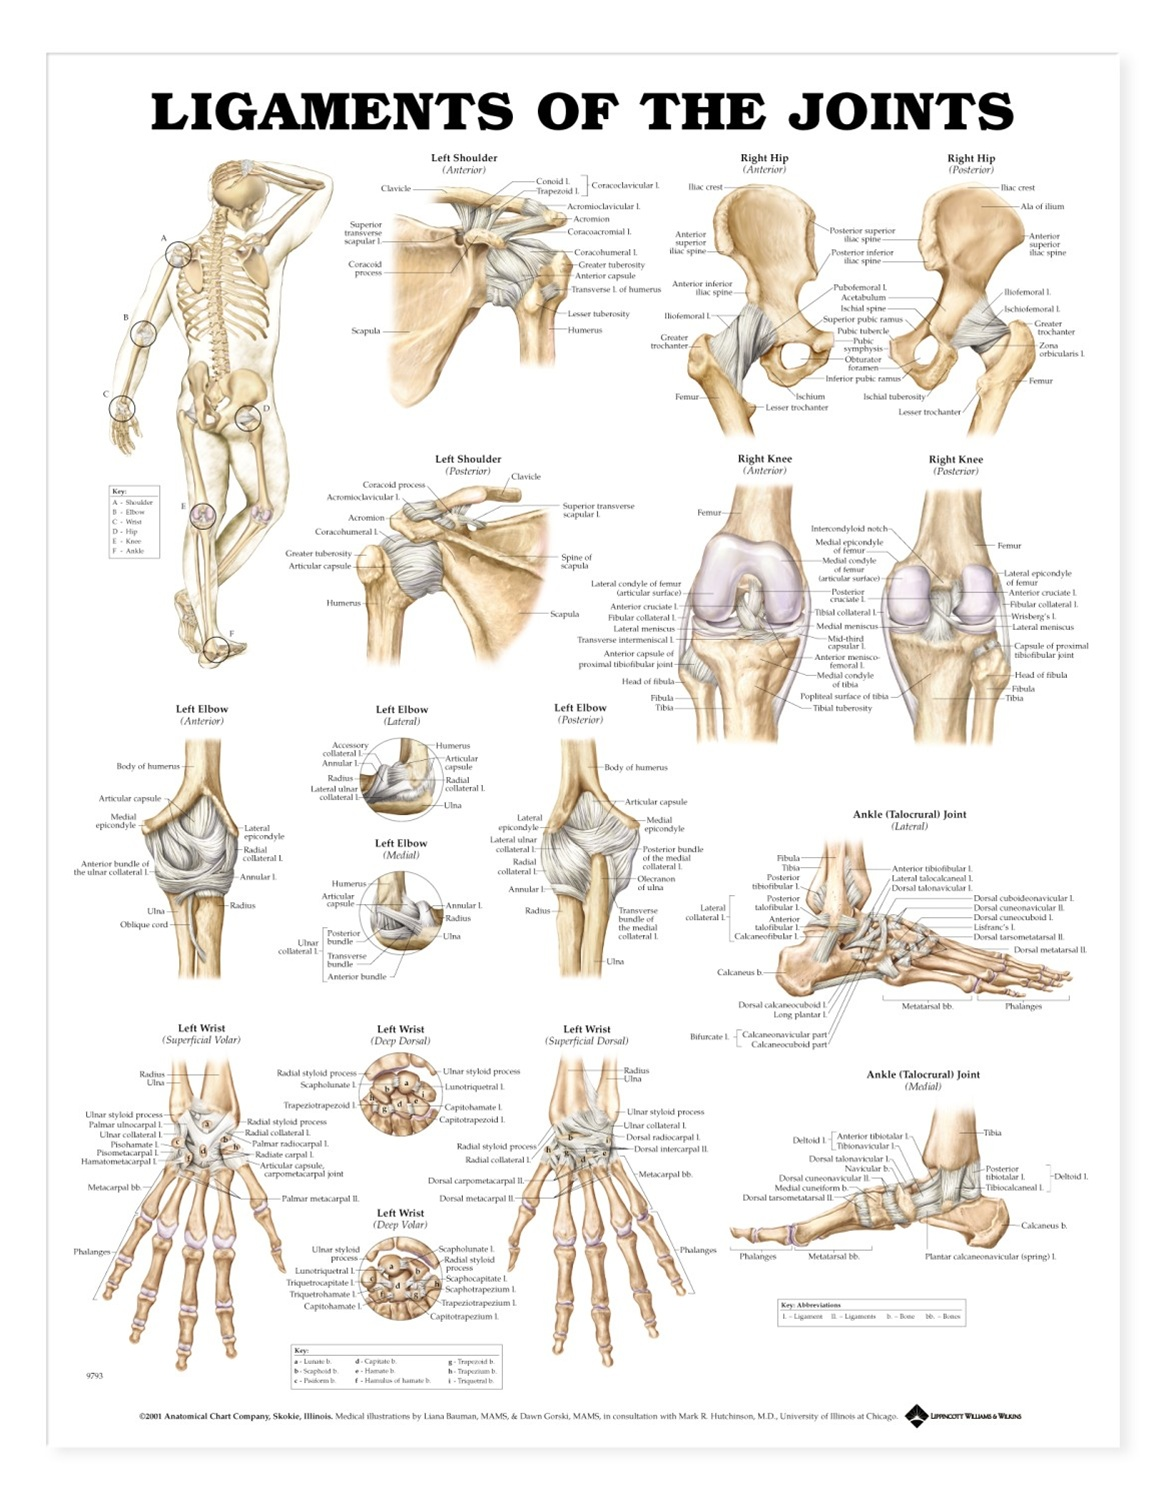 Ligaments of the Joints Anatomical Chart - Anatomy Models and ...